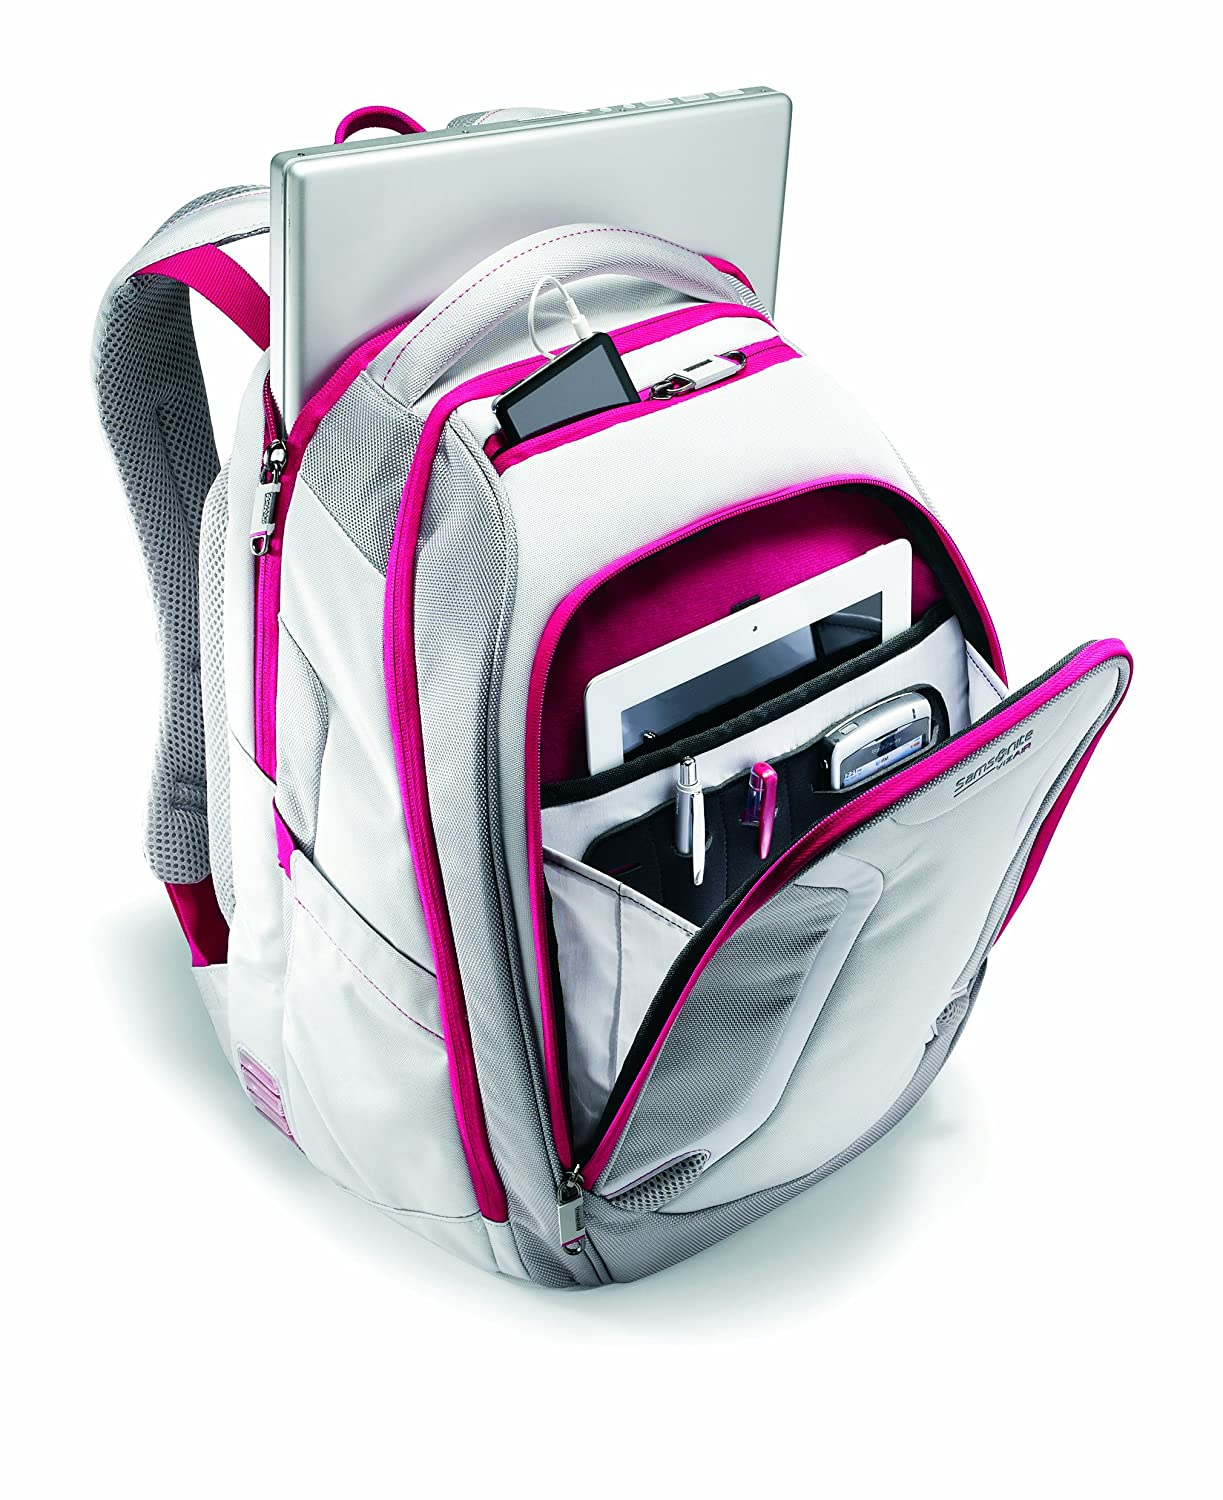 Samsonite Luggage Vizair Laptop Backpack, Silver/Ultra Pink